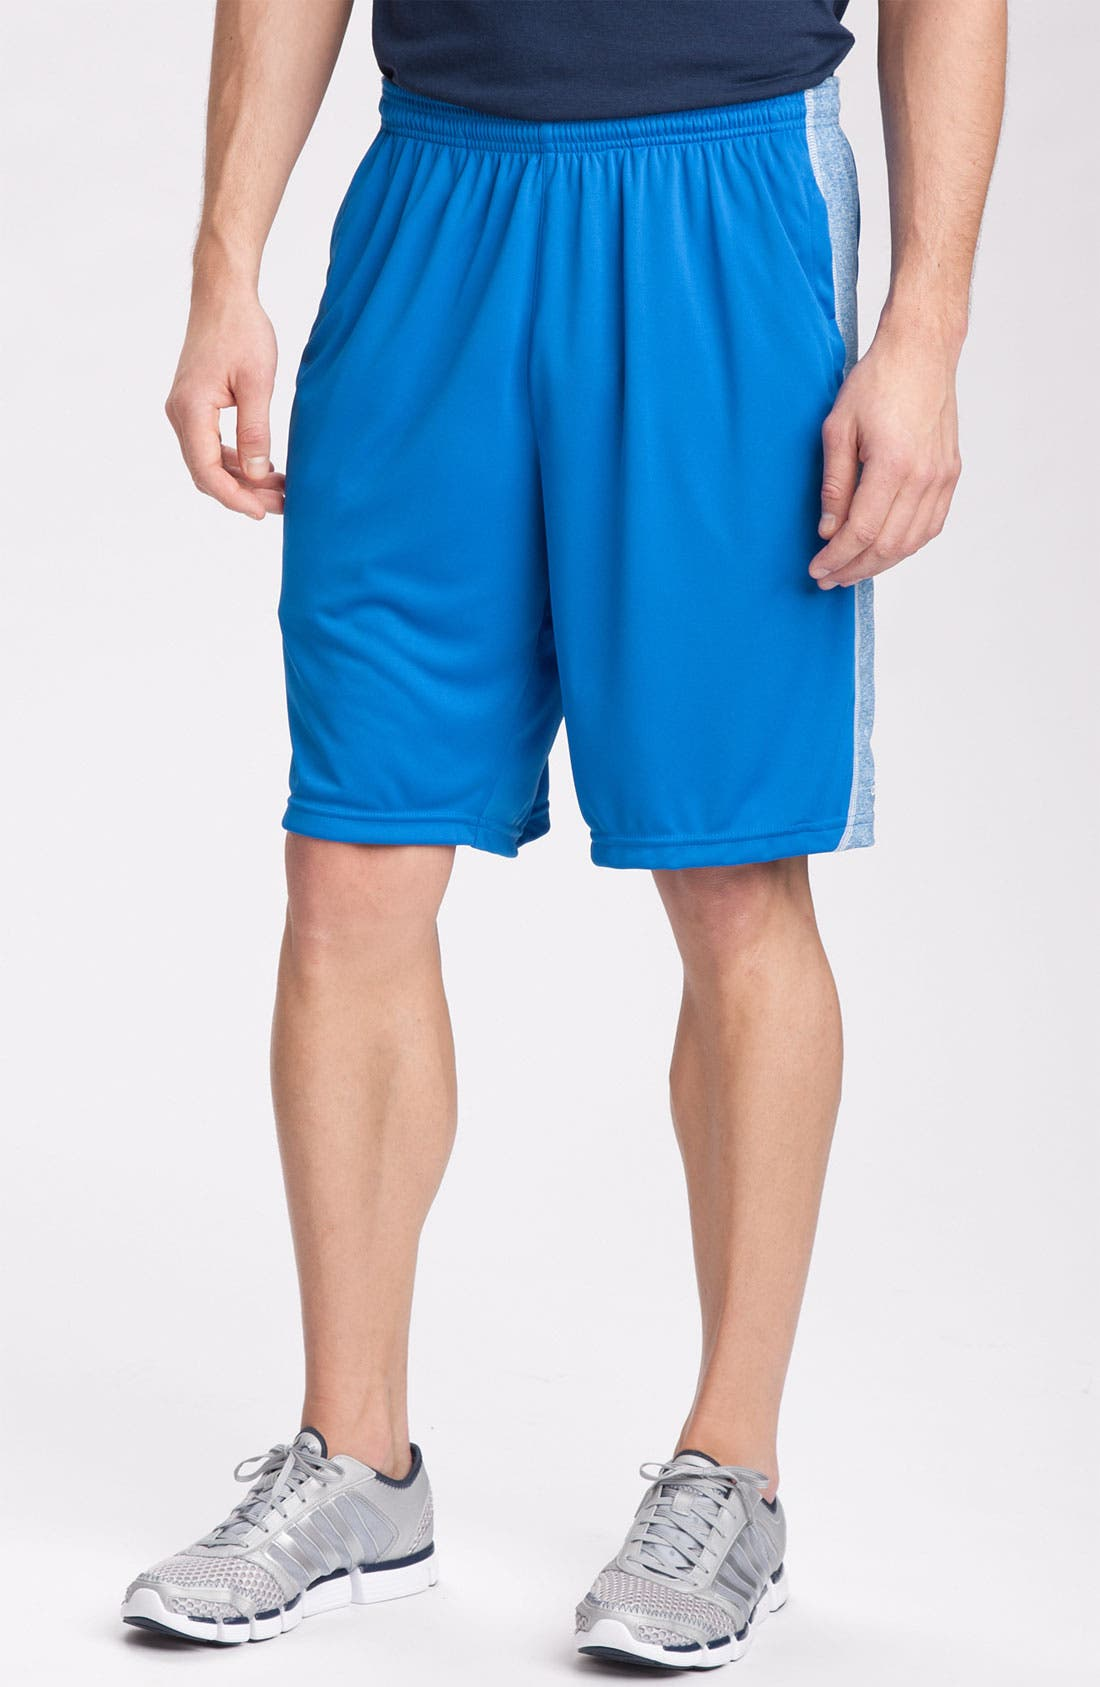 Main Image - adidas 'Force' Shorts